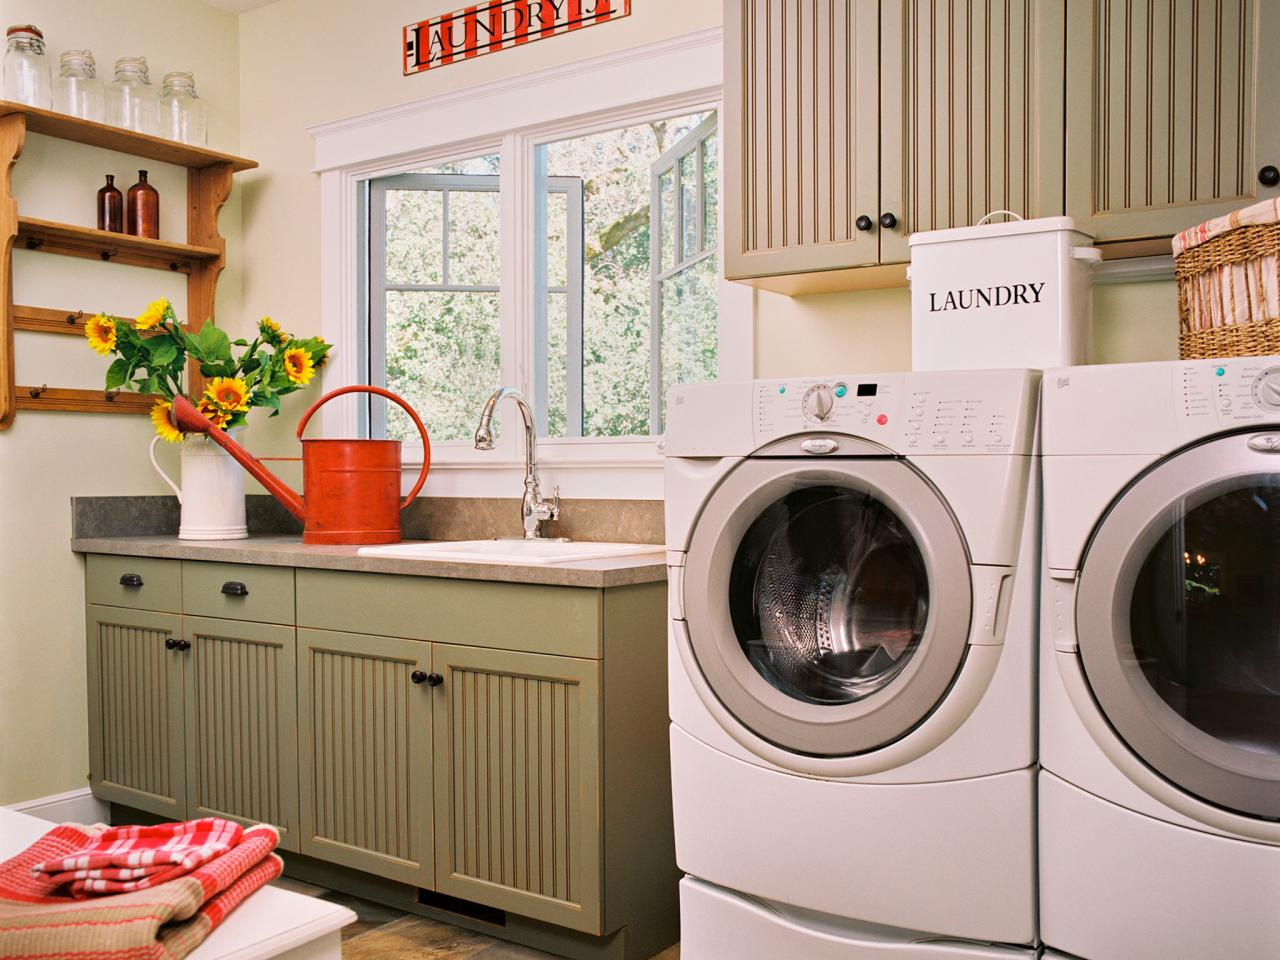 Laundry room makeover ideas pictures options tips - Laundry room design ideas ...